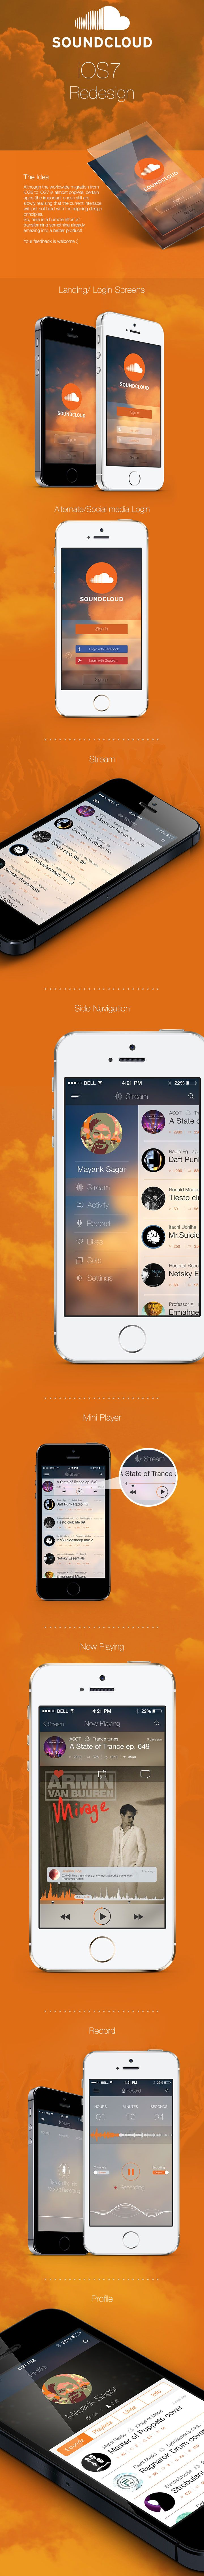 Soundcloud app iOS7 redesign